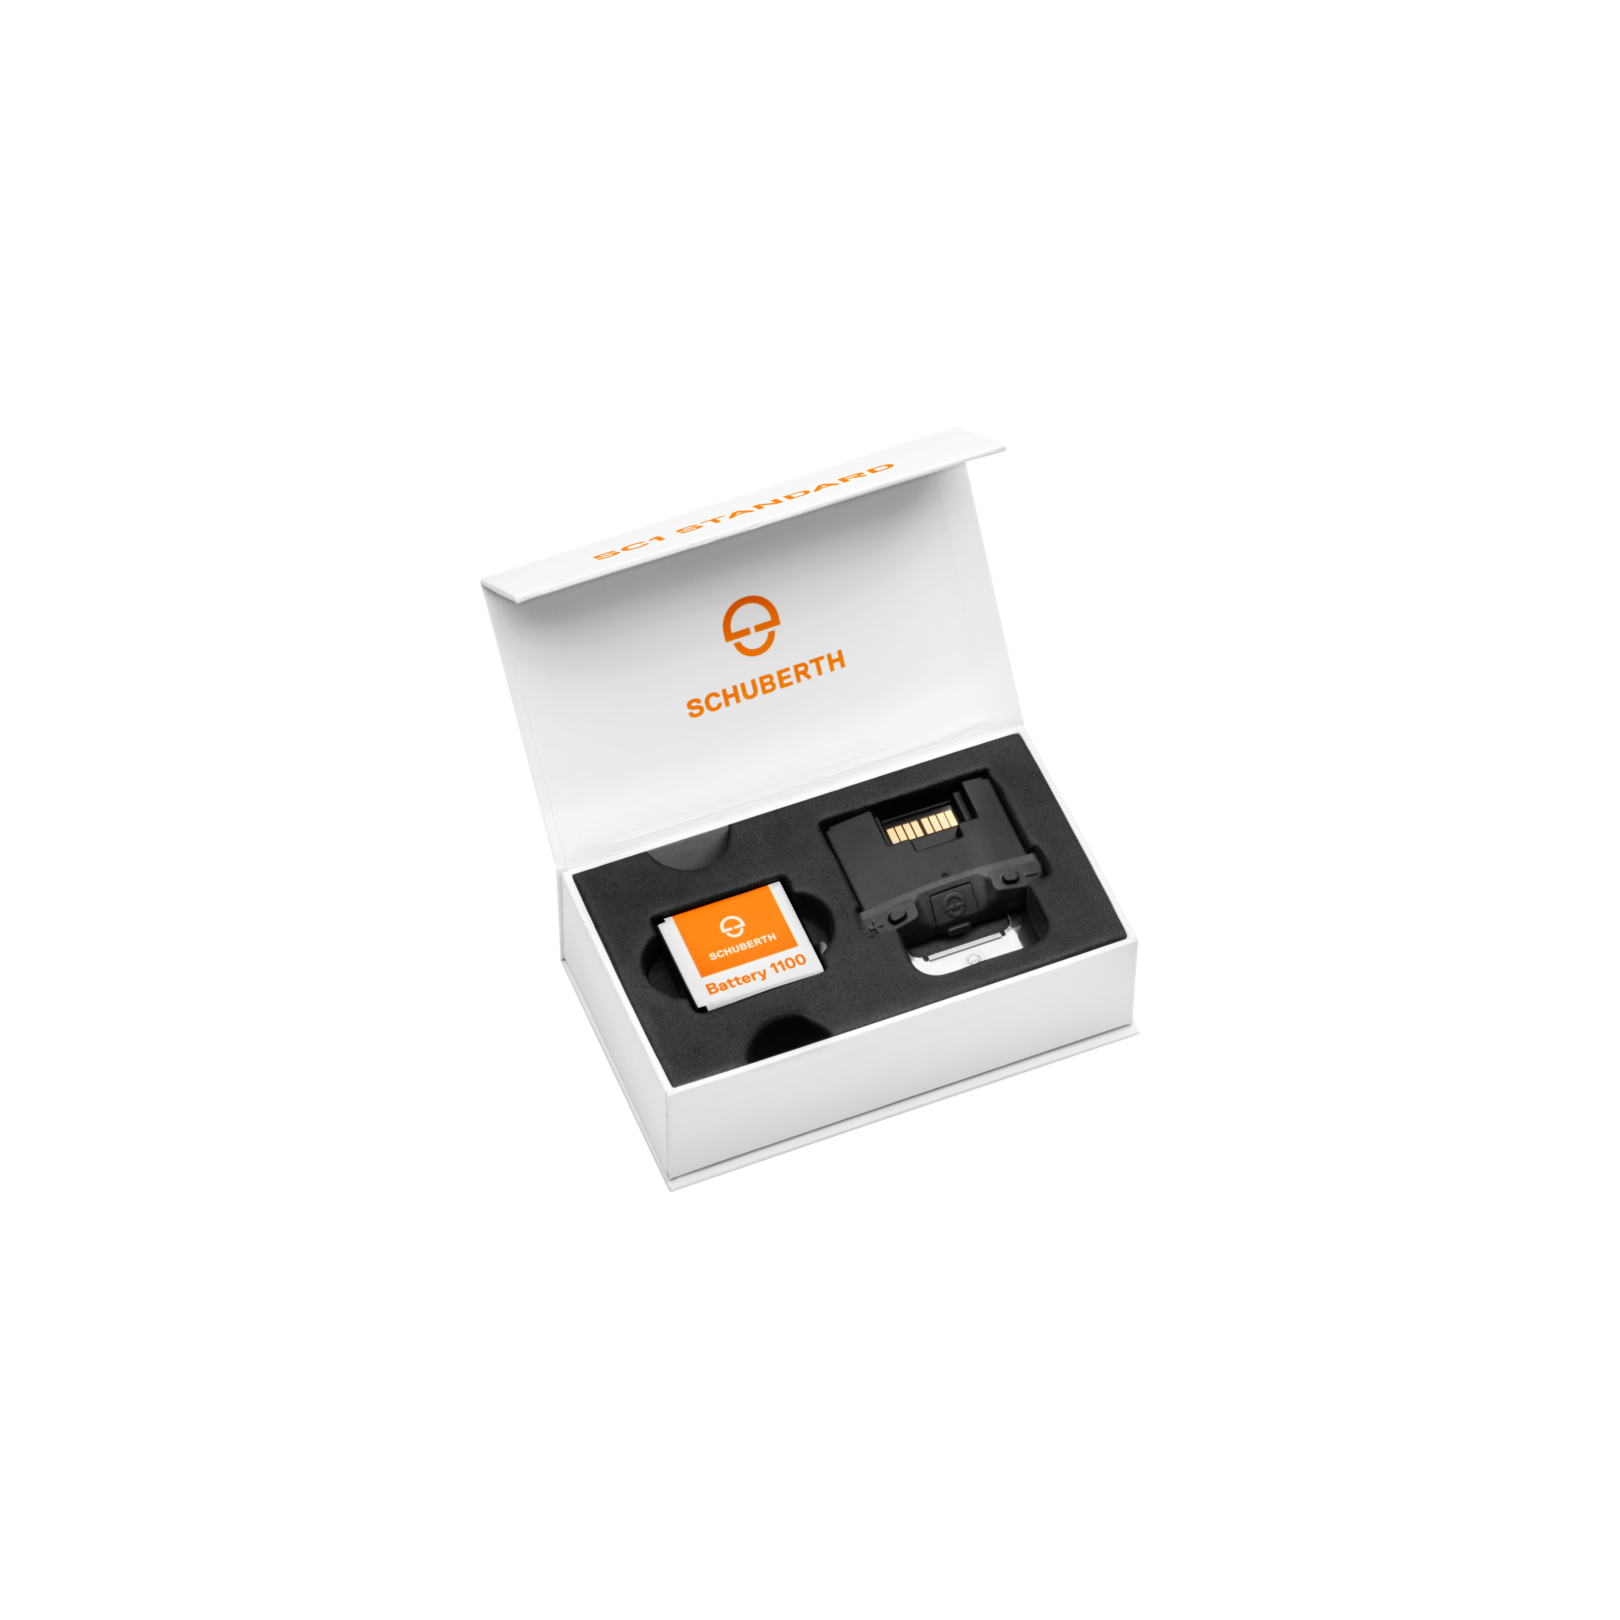 Kit mains libres Schuberth SC1 Standard